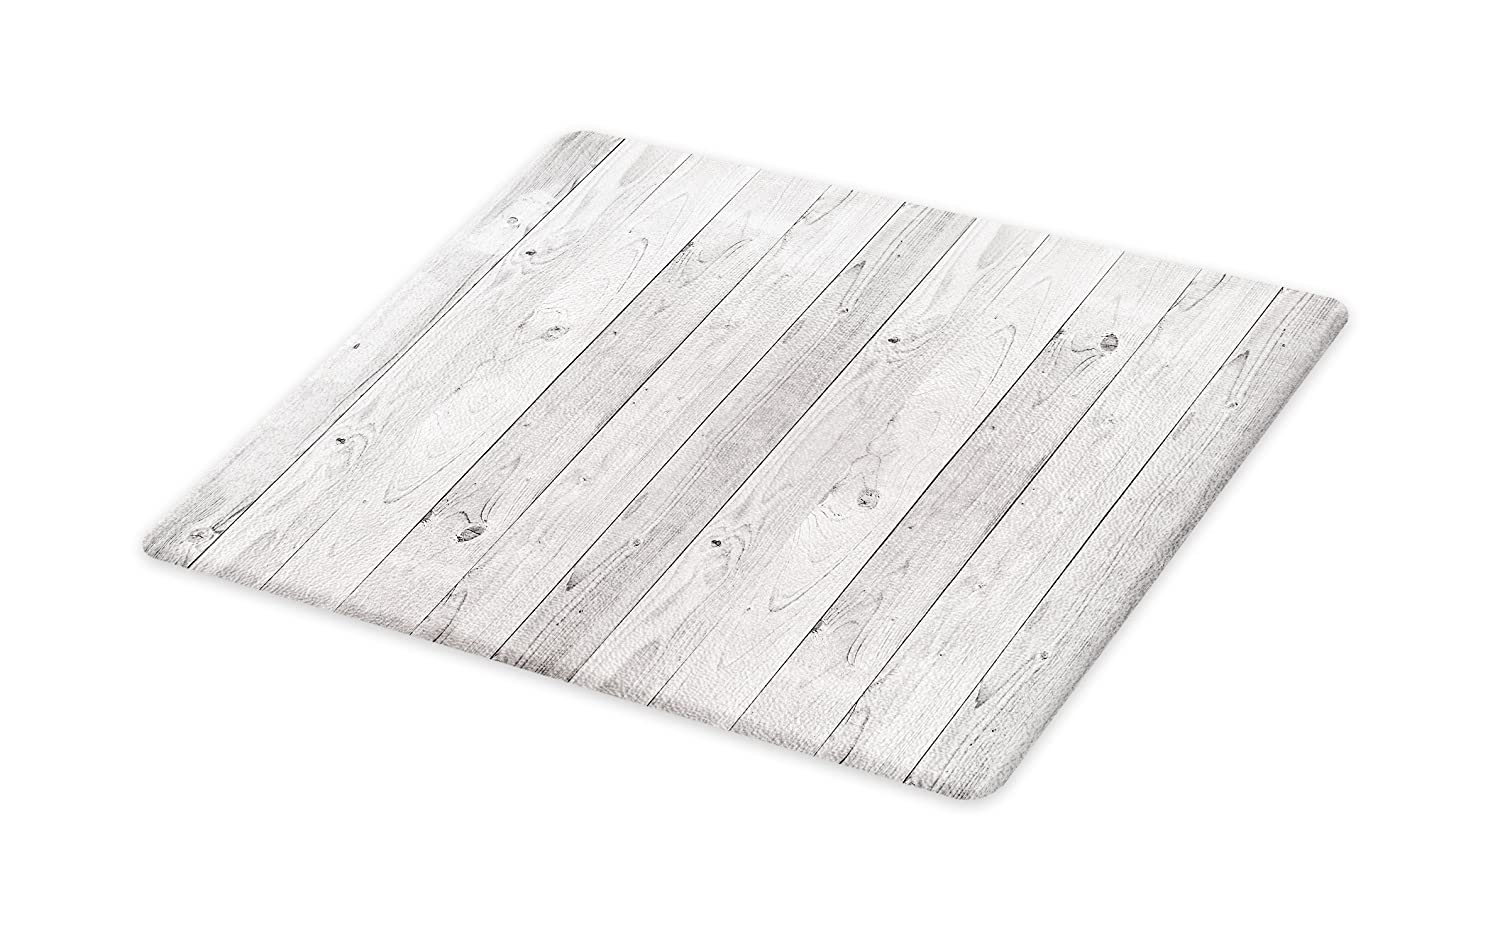 Lunarable Grey Cutting Board, Picture of Smooth Oak Wood Texture in Old Fashion Retro Style Horizontal Nature Design Home, Decorative Tempered Glass Cutting and Serving Board, Small Size, Gray